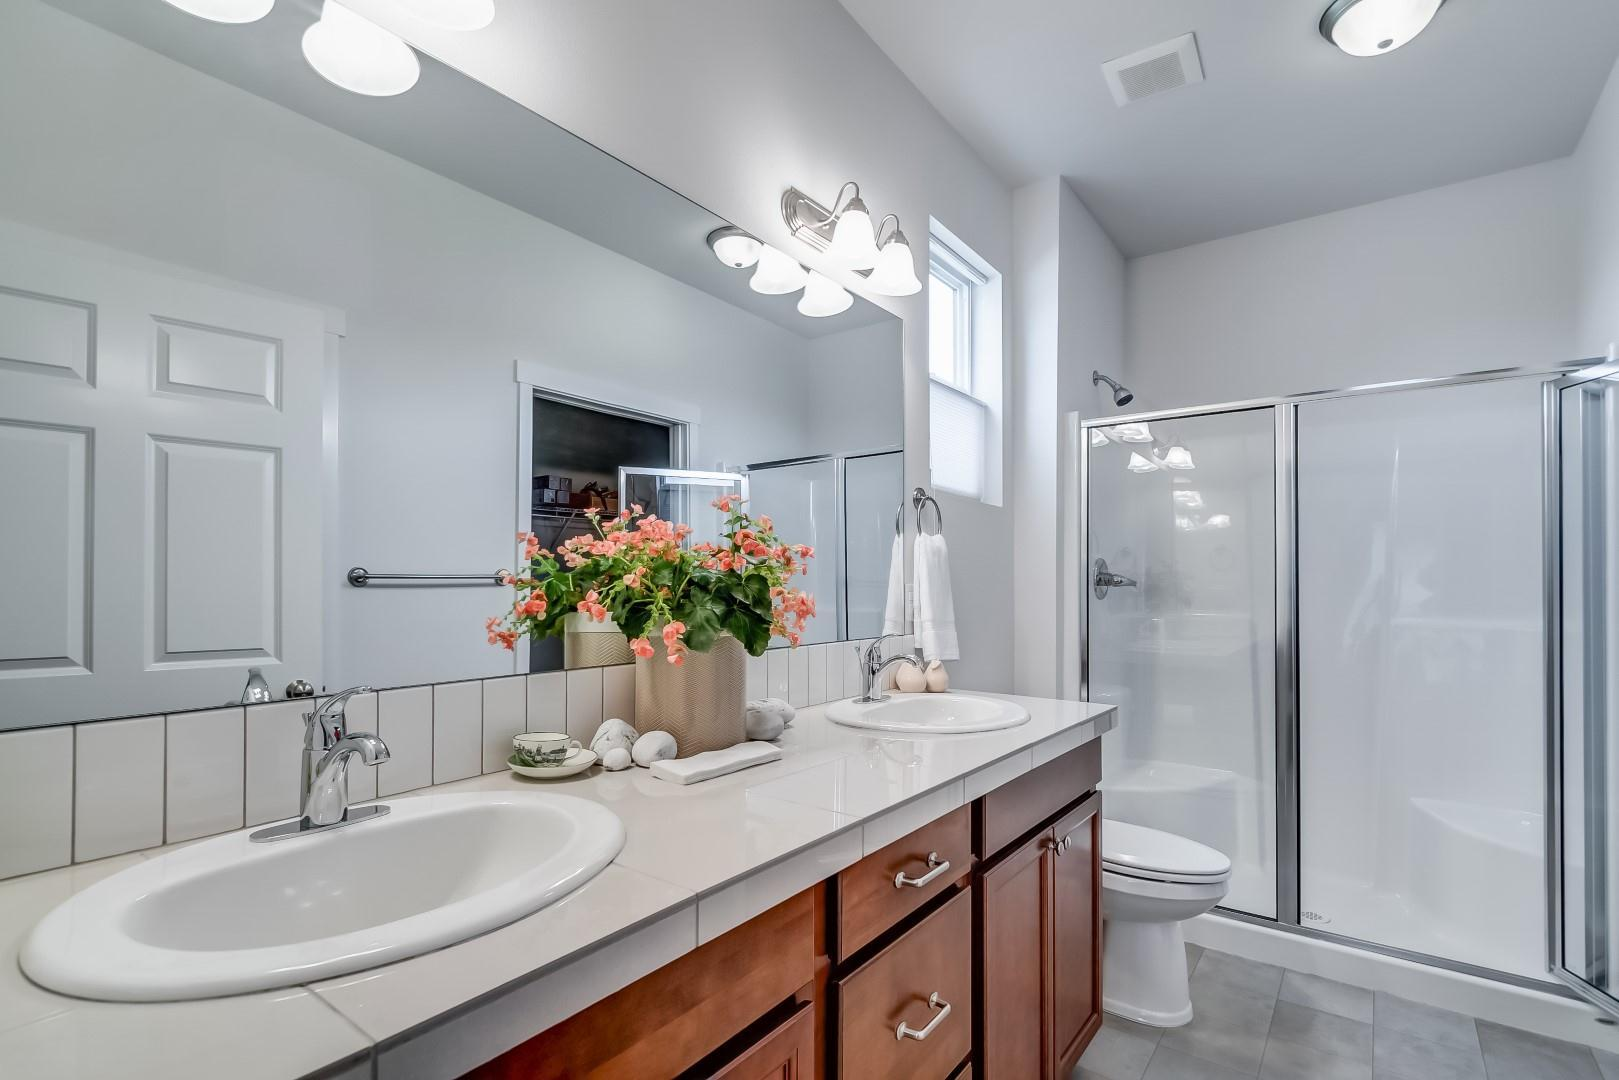 Bathroom featured in the CC Birch By Landed Gentry Homes in Bellingham, WA